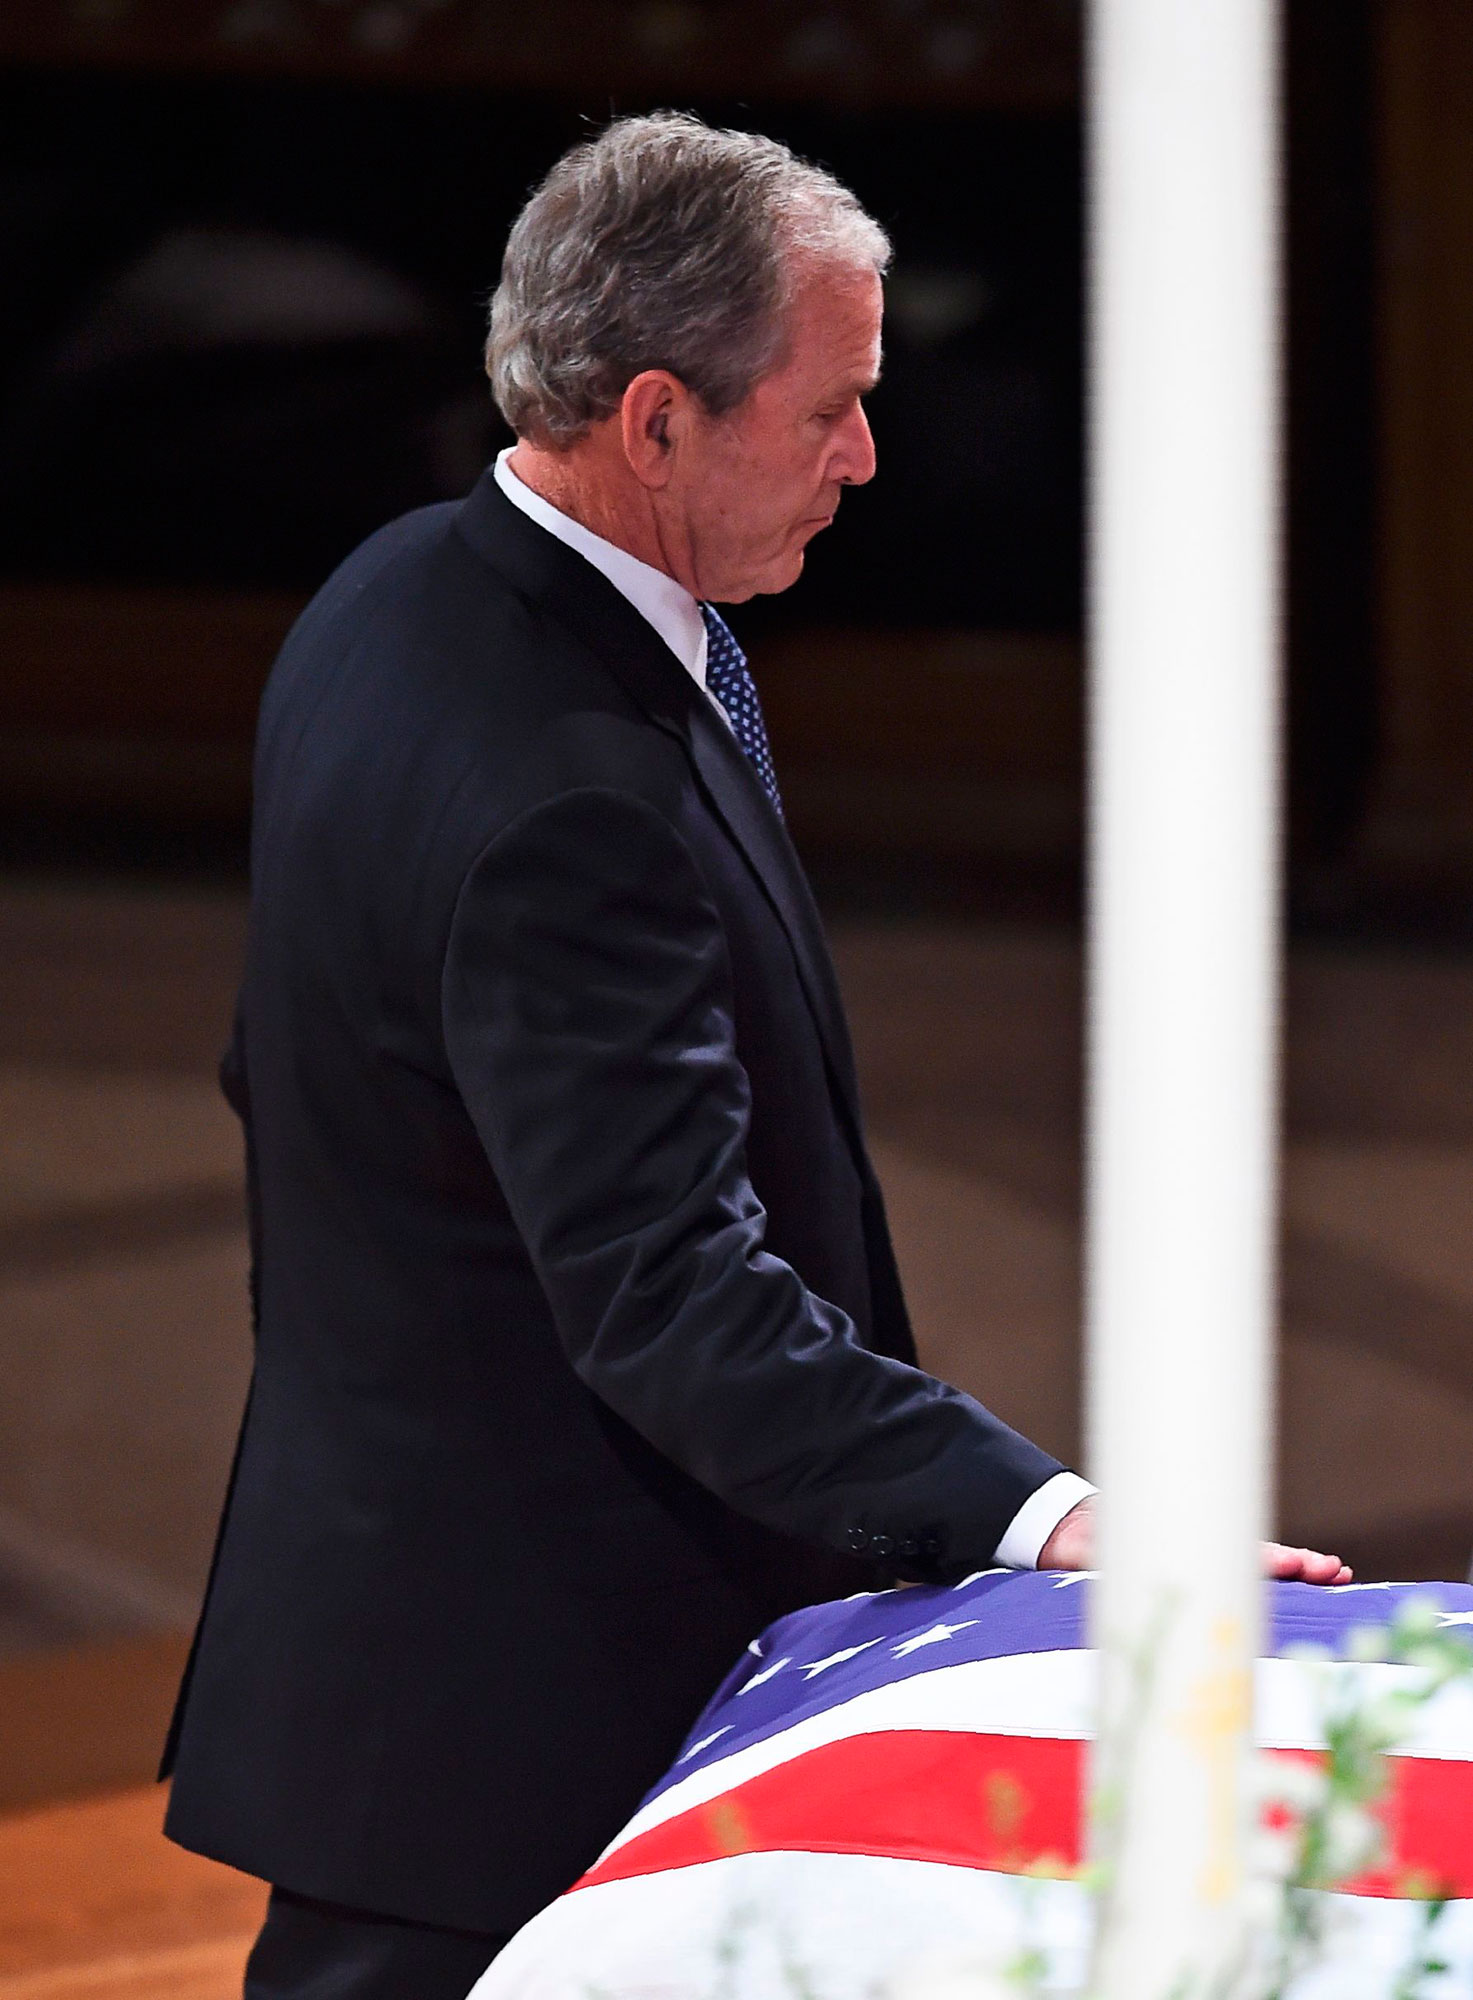 "<div class=""meta image-caption""><div class=""origin-logo origin-image none""><span>none</span></div><span class=""caption-text"">Former president George W. Bush touches the casket as he arrives to give a eulogy at the state funeral of his father former US president George H.W. Bush. (BRENDAN SMIALOWSKI/AFP/Getty Images)</span></div>"